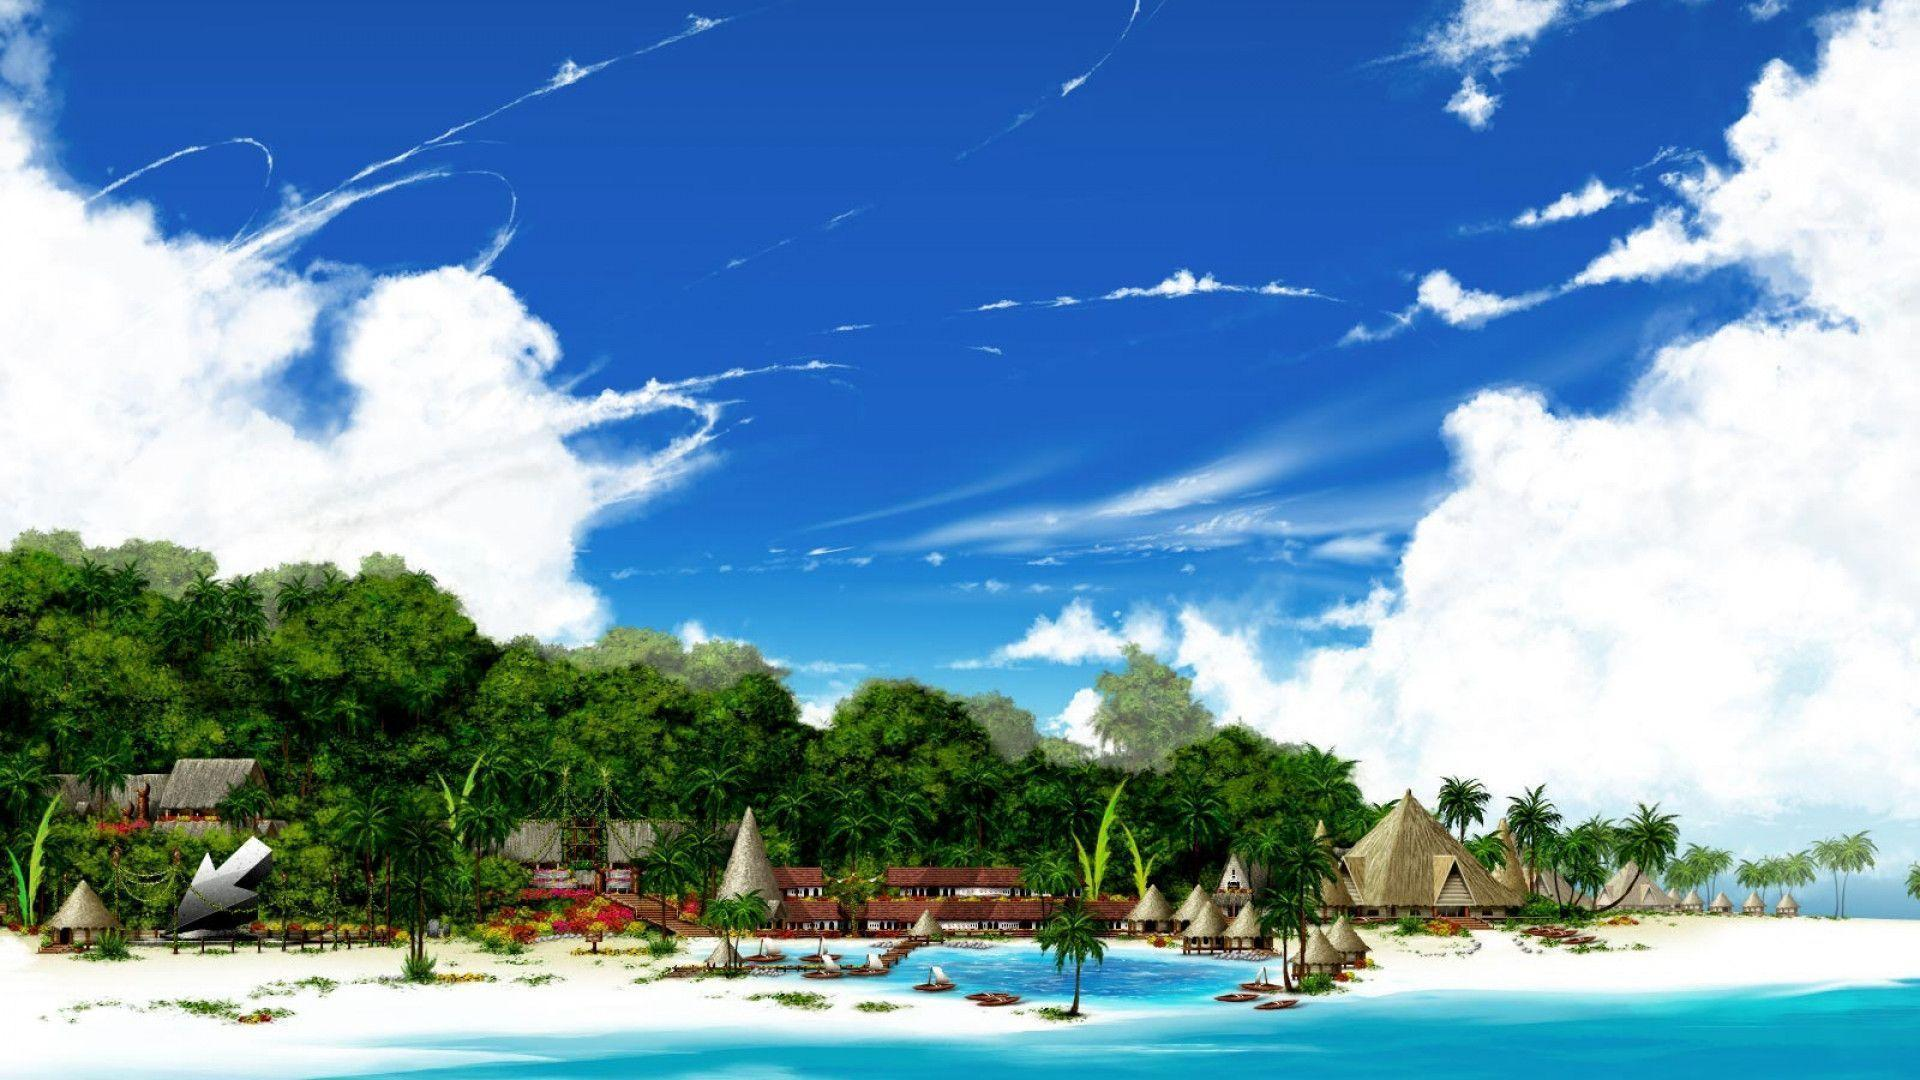 Hd Tropical Island Beach Paradise Wallpapers And Backgrounds: Paradise Beach Wallpapers